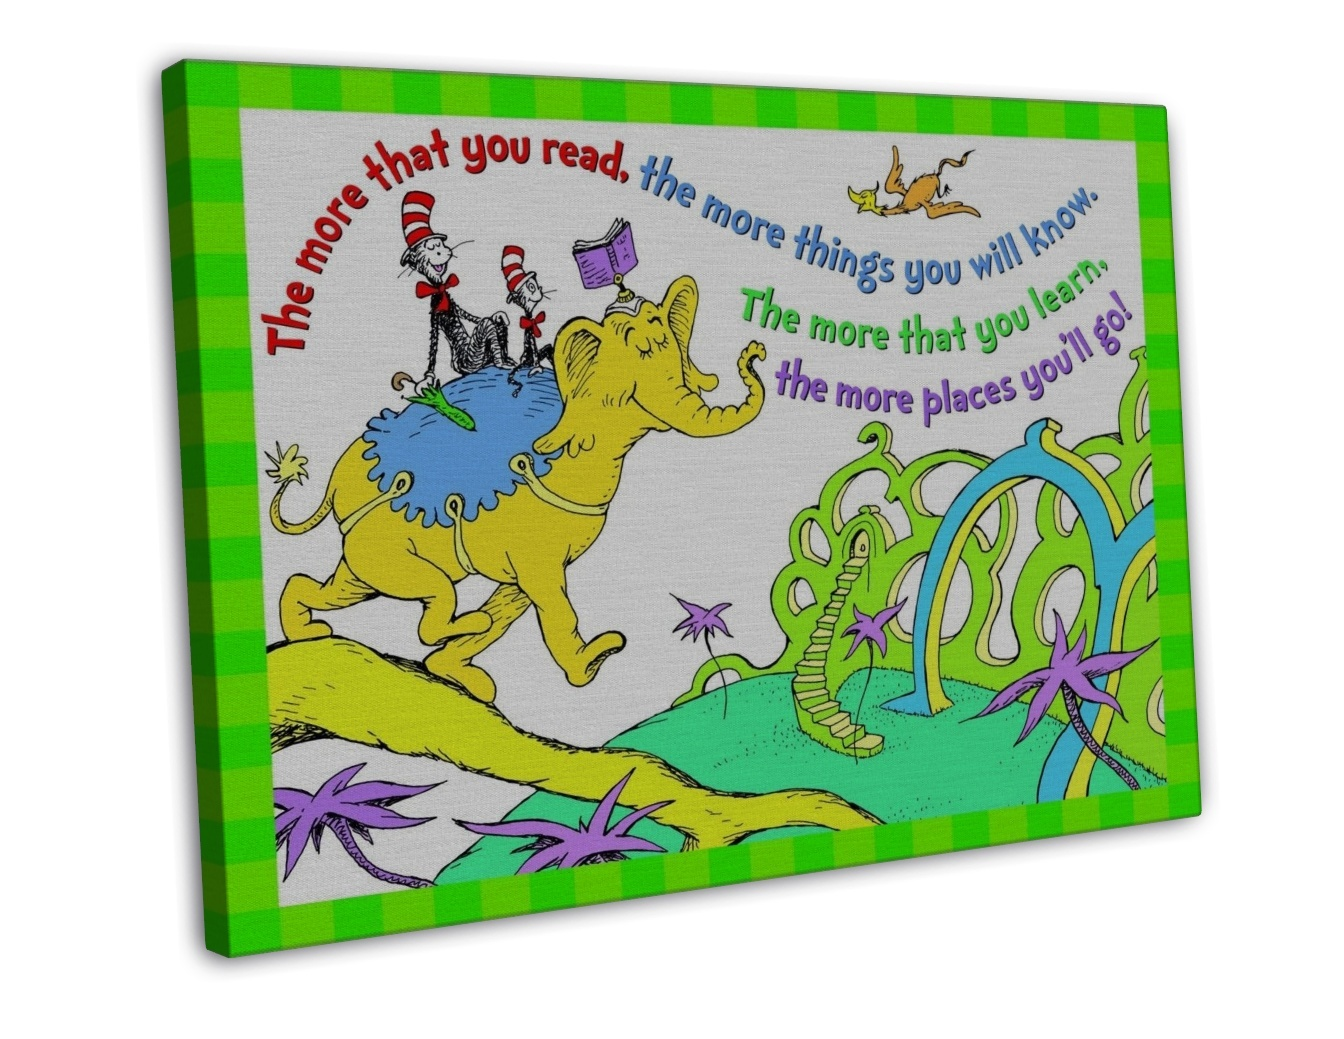 eureka dr seuss the more you read wall decor 20x16 framed. Black Bedroom Furniture Sets. Home Design Ideas